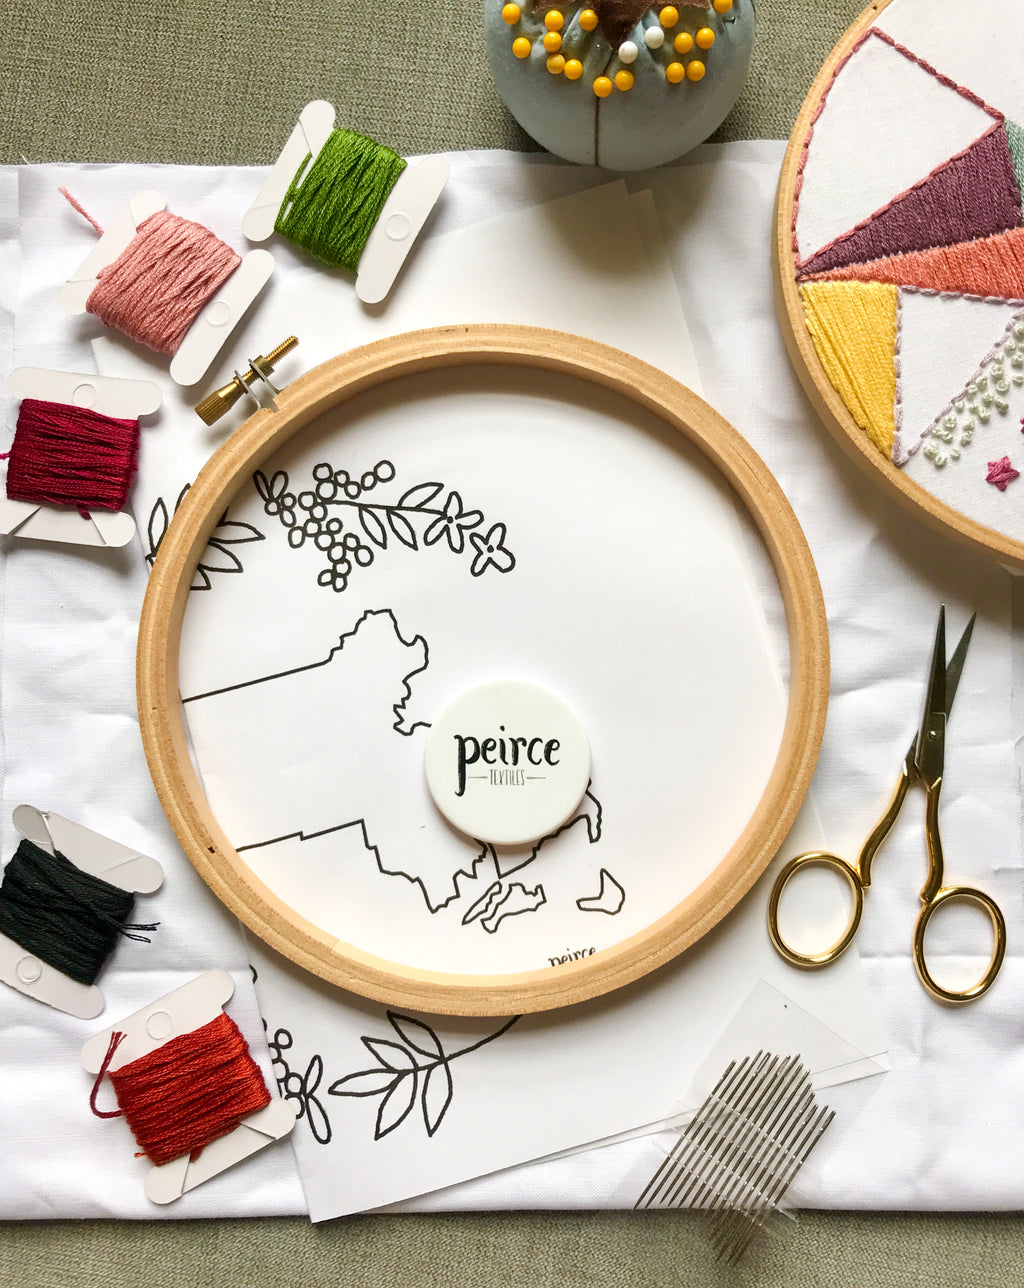 Embroidery kit with embroidery hoop, pattern, embroidery floss of varying colors, and embroidery needles